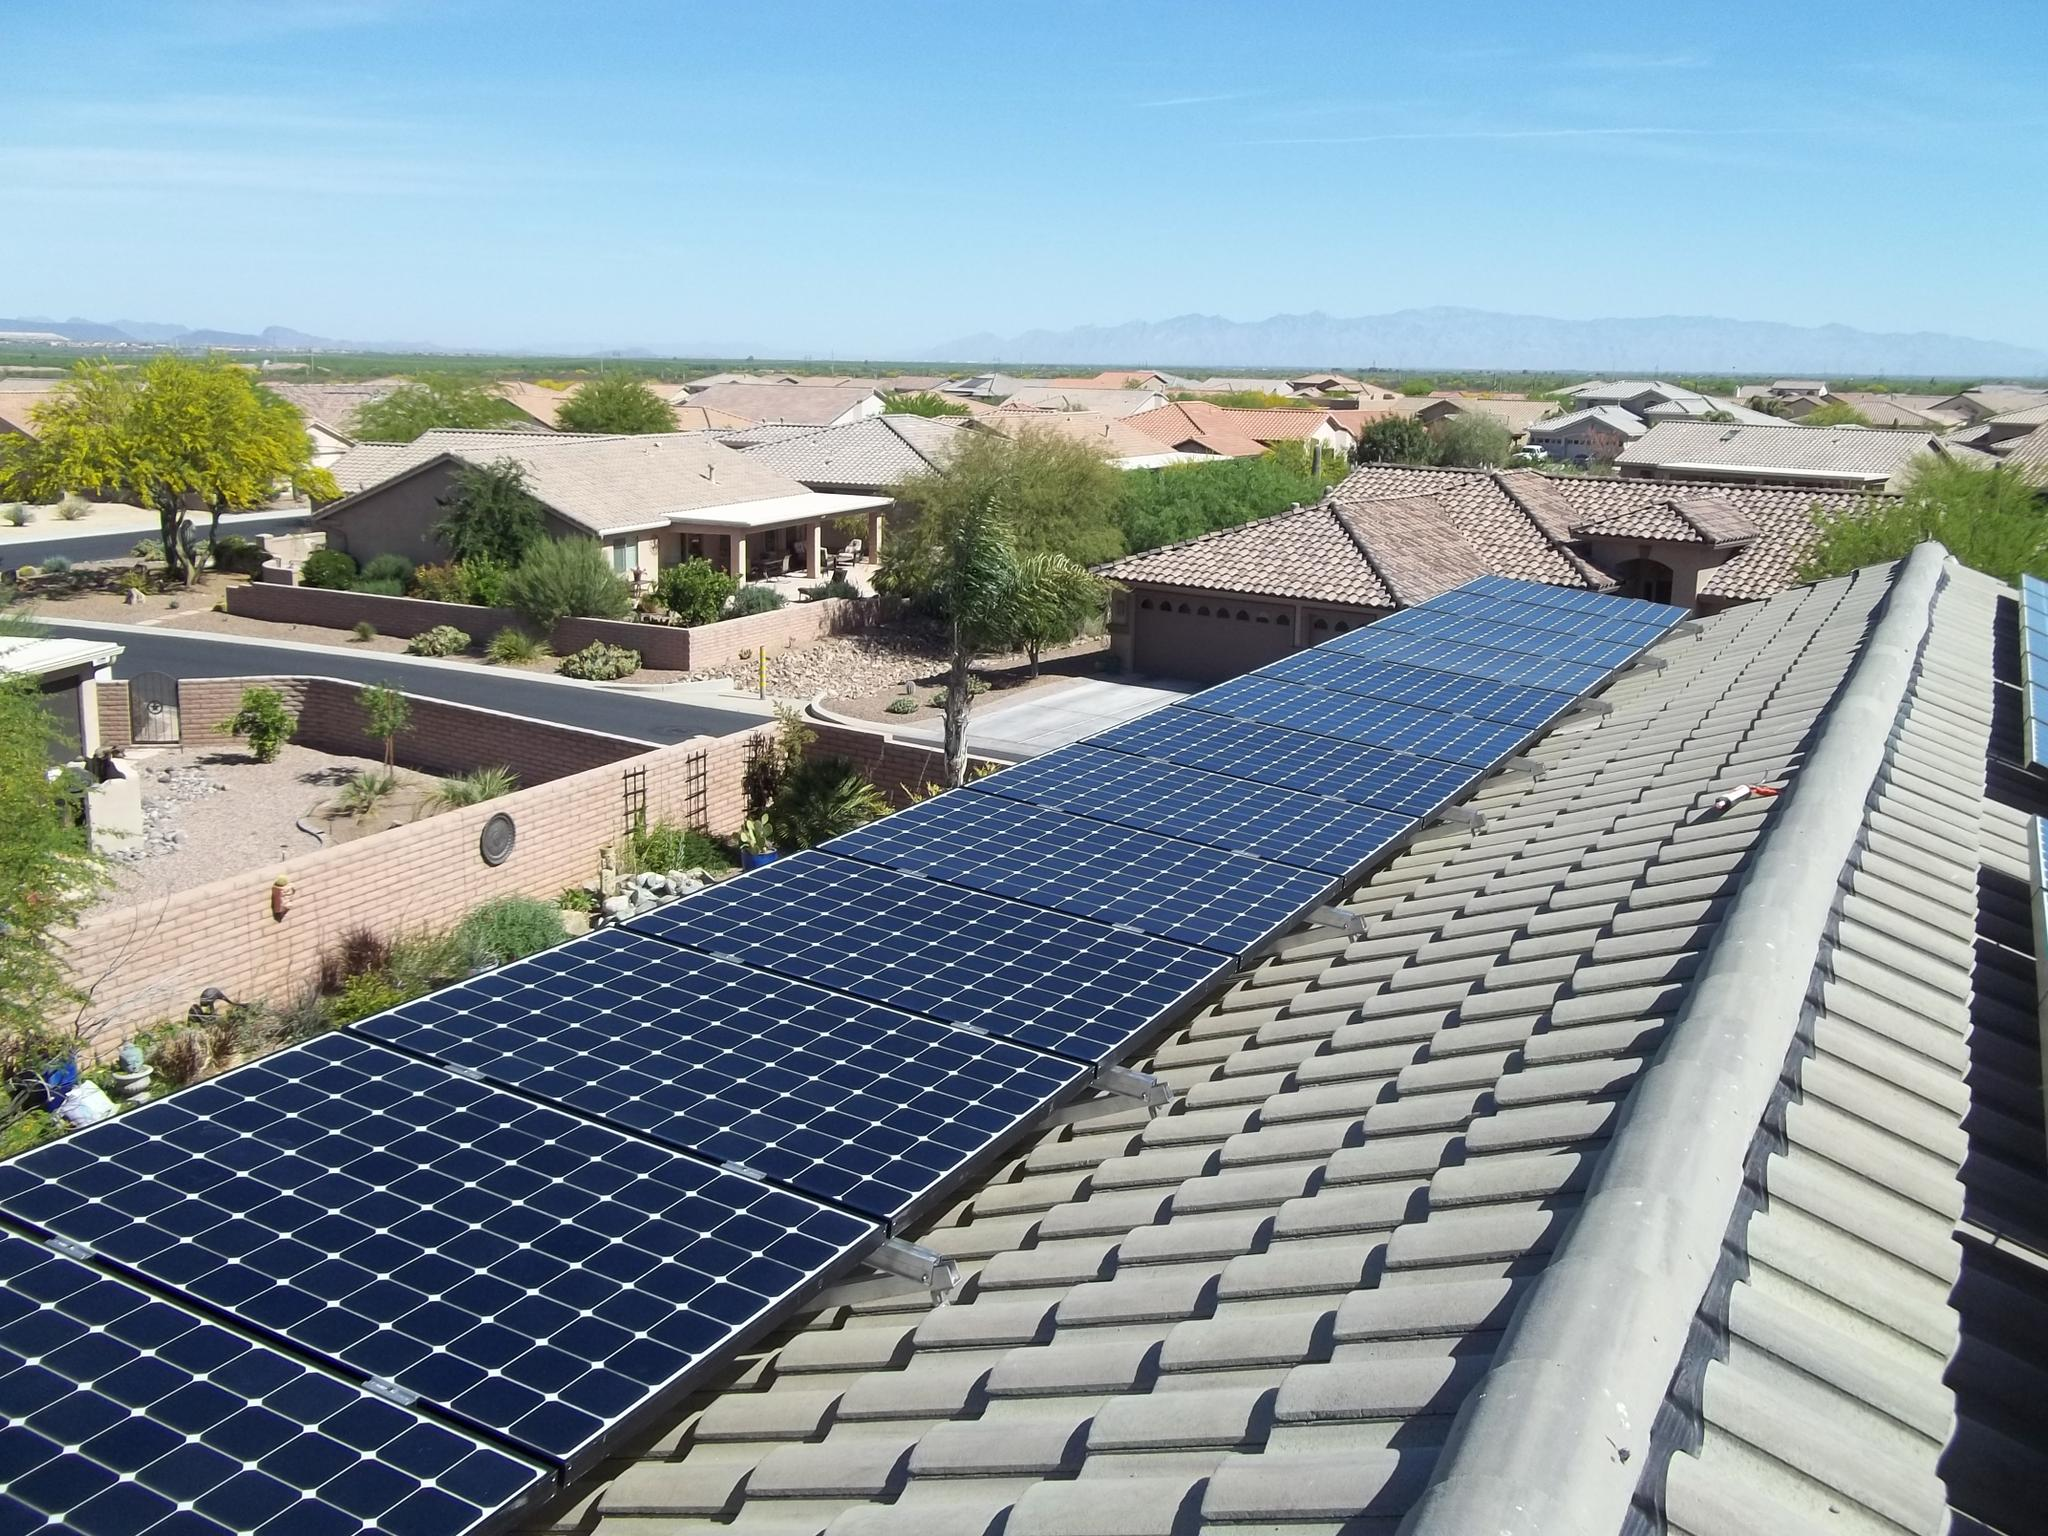 Summerwind Solar Llc Profile Amp Reviews 2019 Energysage